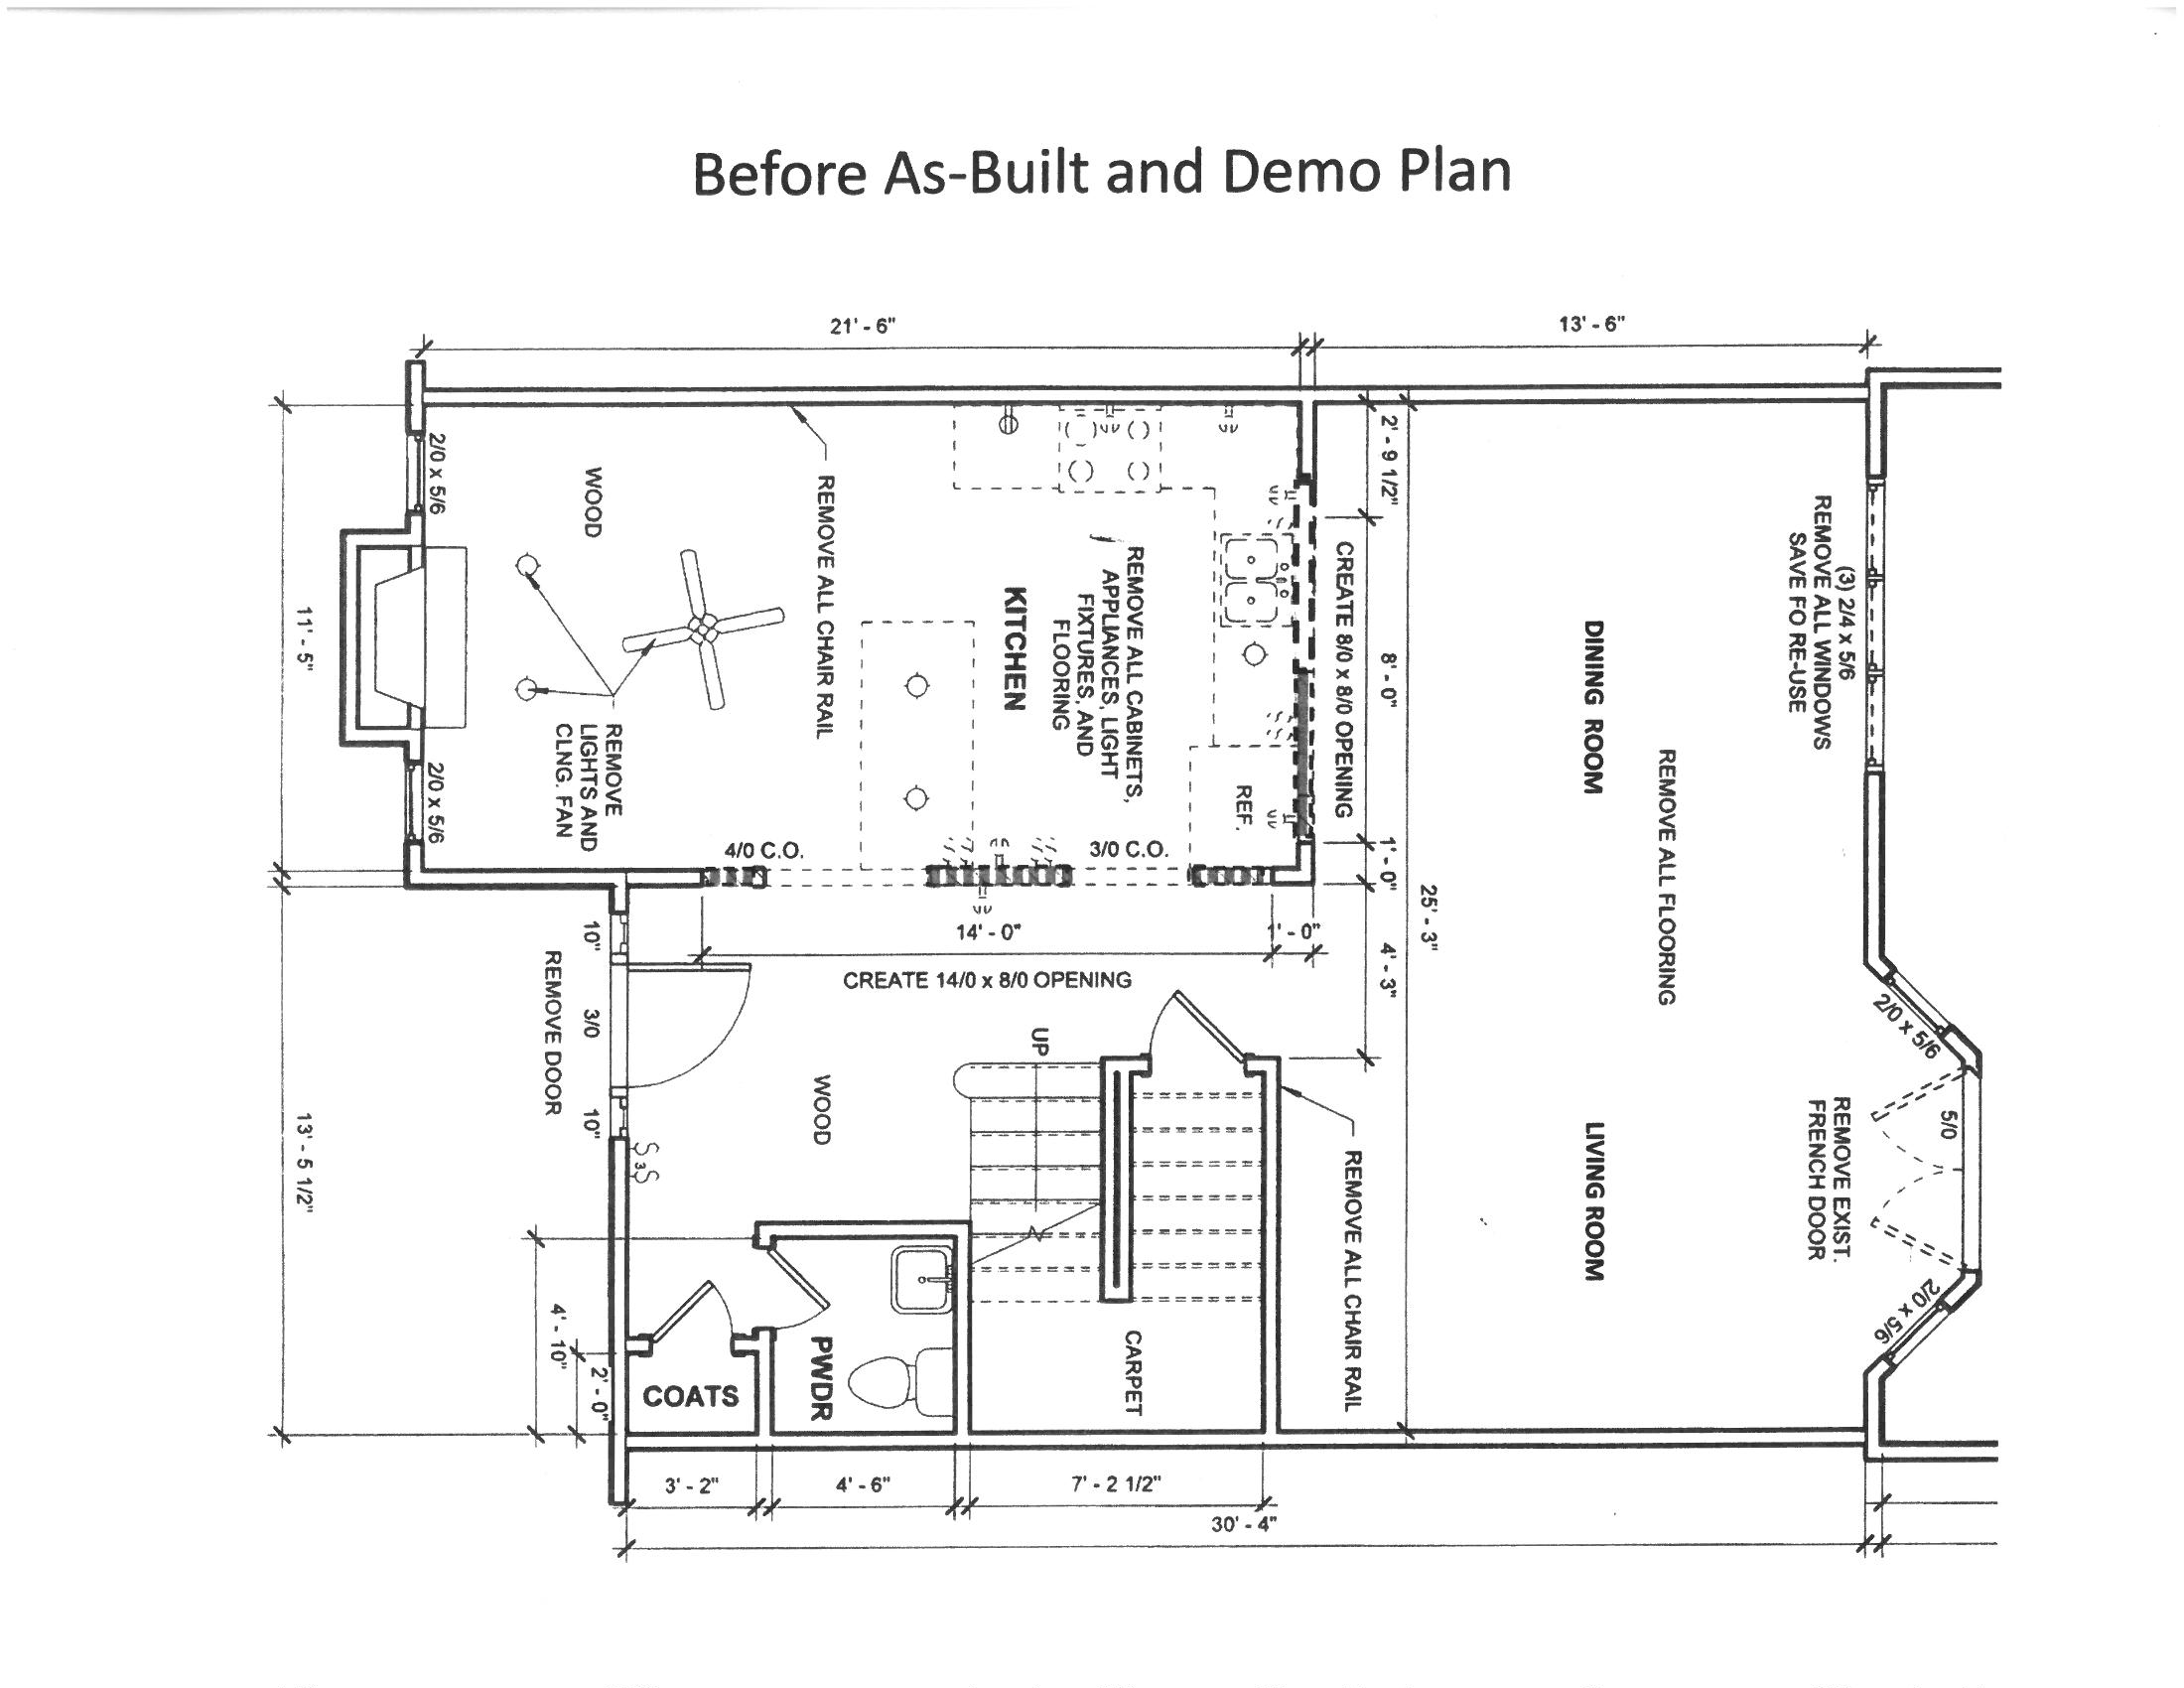 Floor plan before remodeling